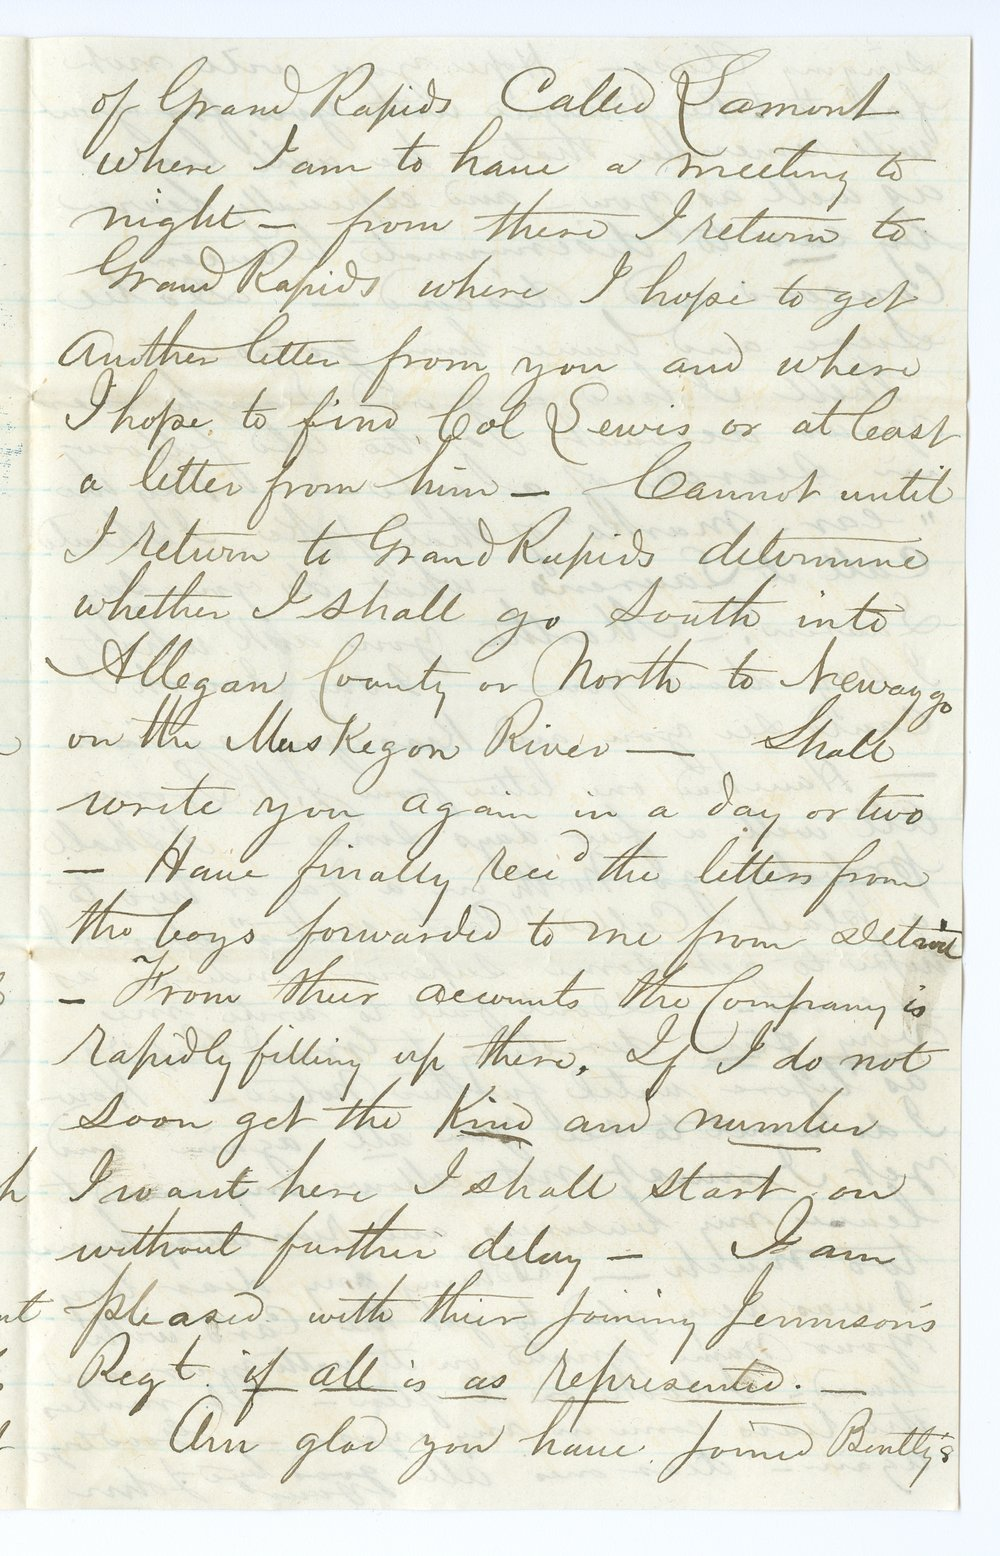 John Brown, Jr. correspondence - 7